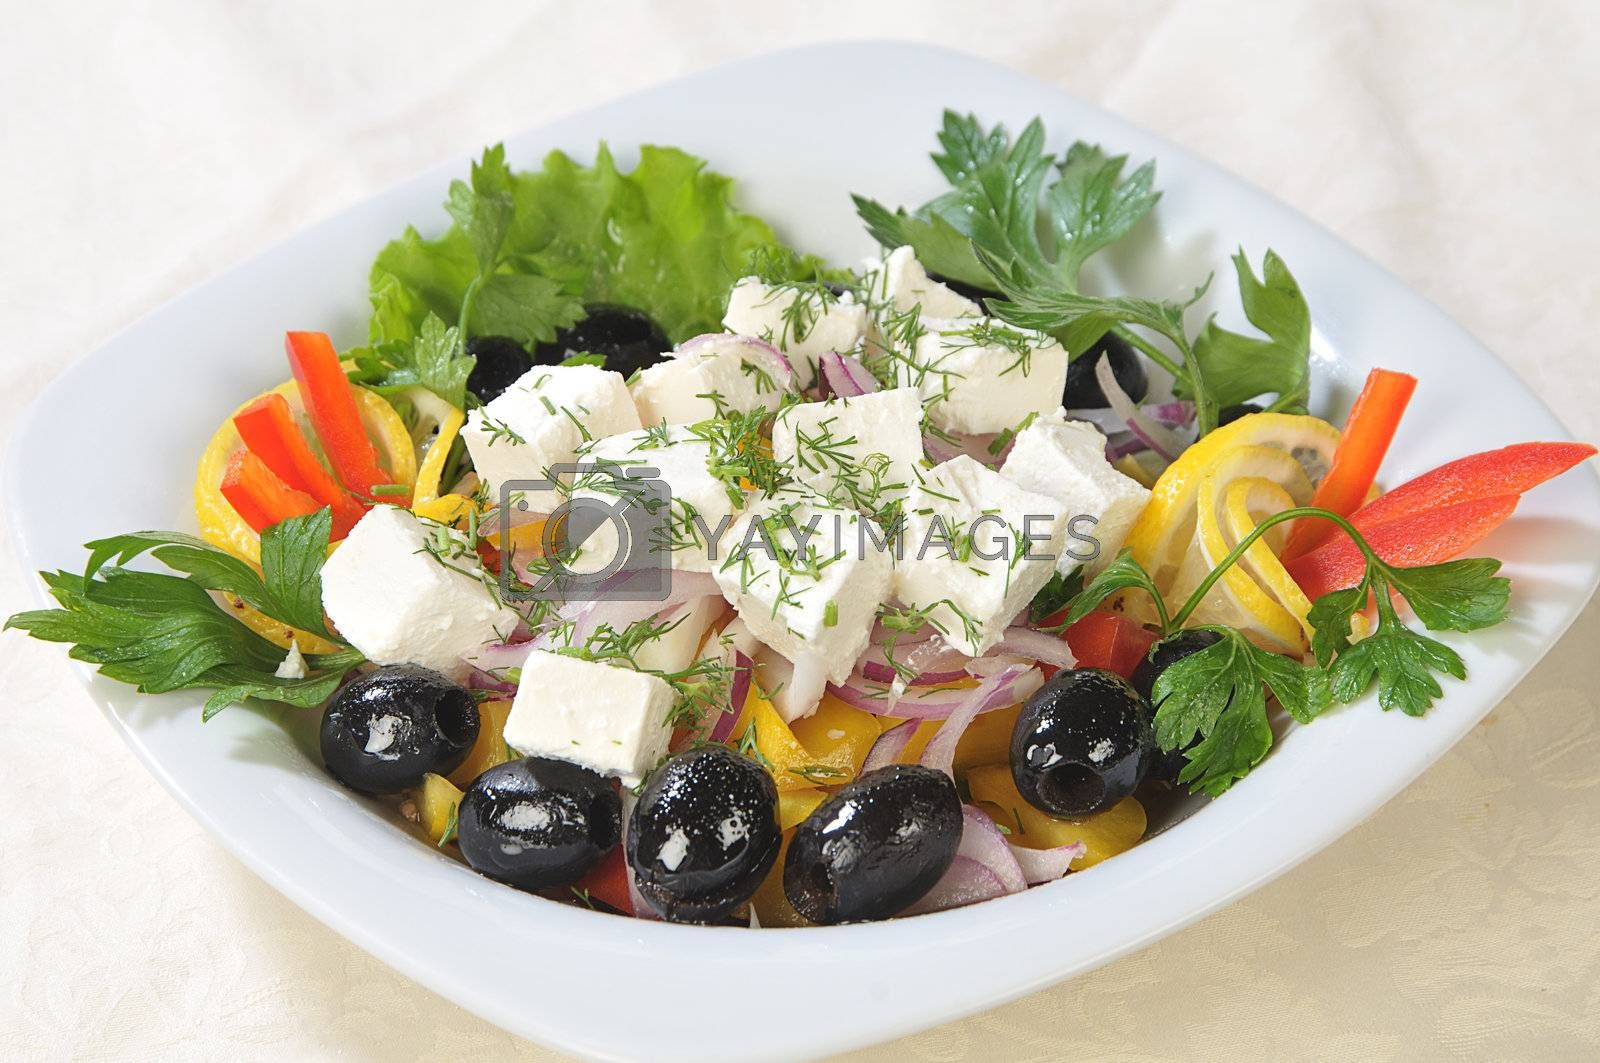 Slices of cheese in a salad of feta cheese and diced vegetables